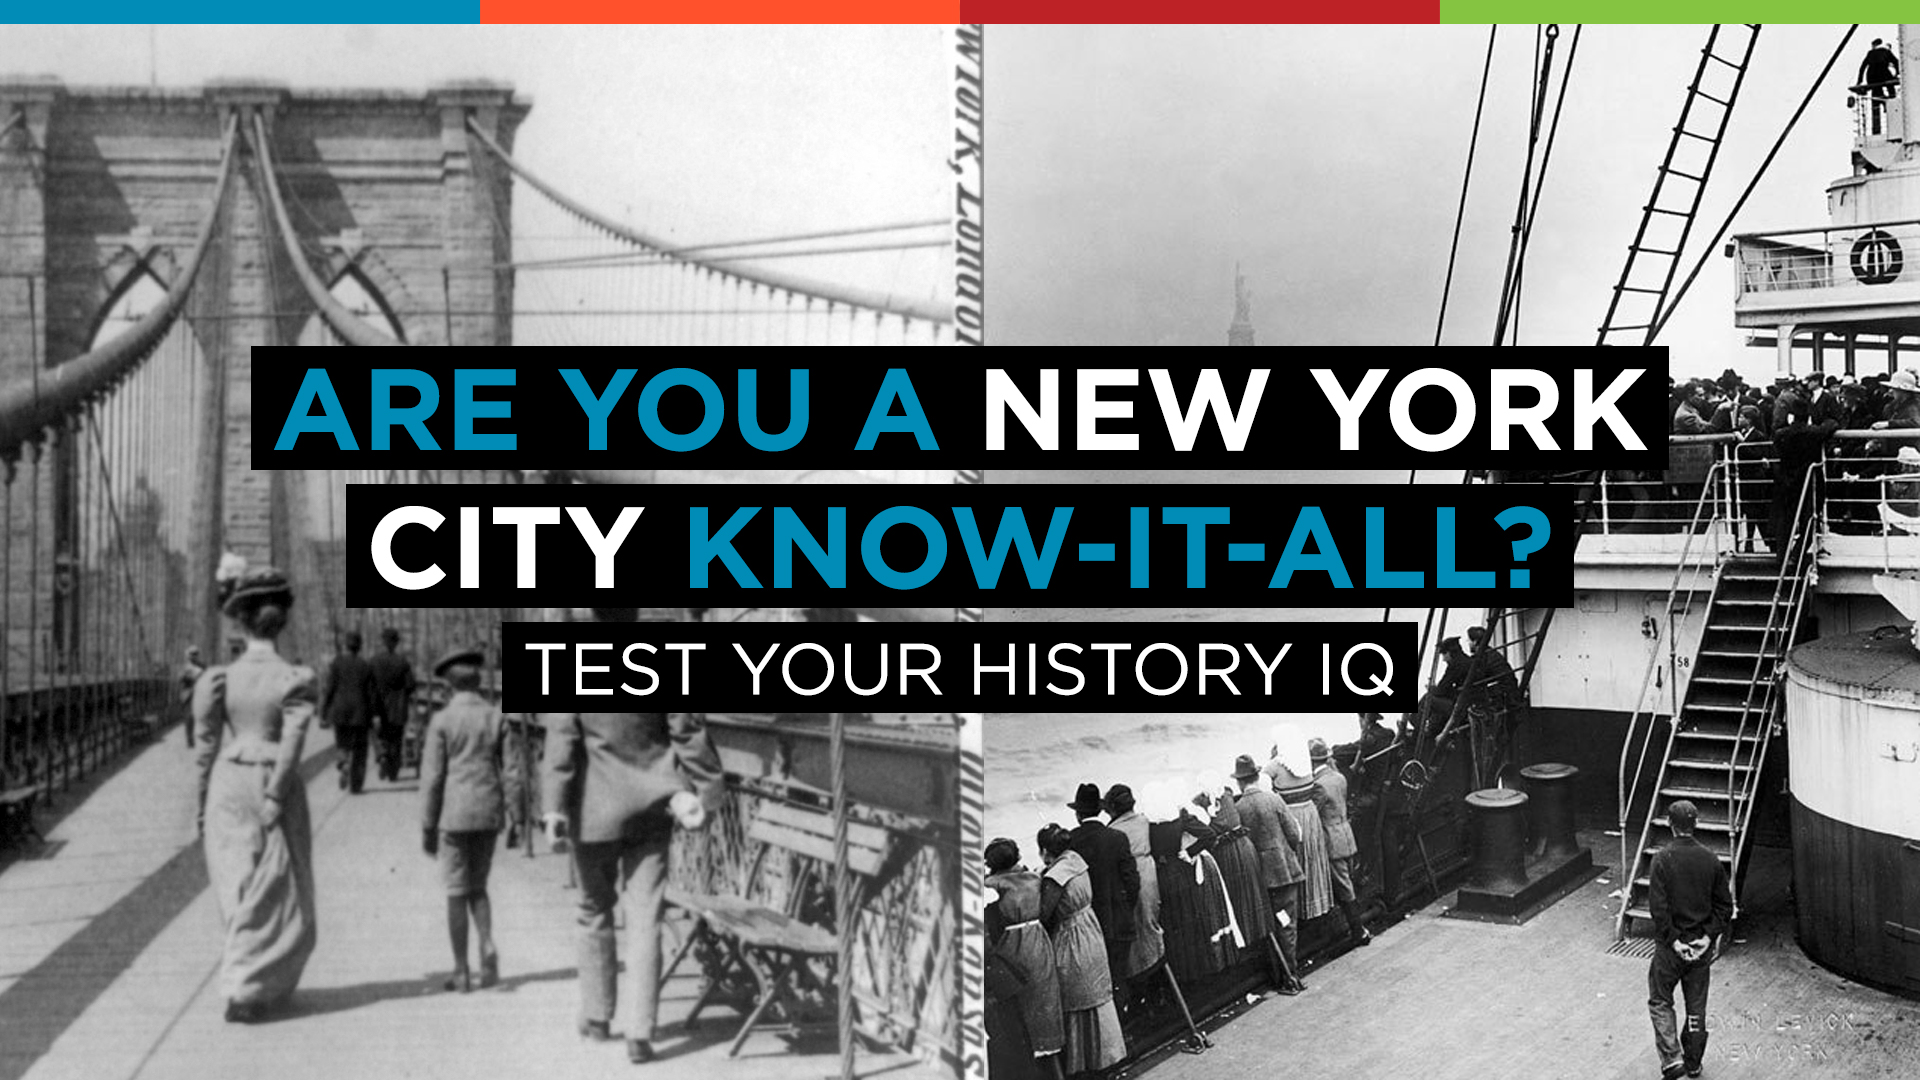 Nyc History Quiz Are You A New York City Know It All House Wiring